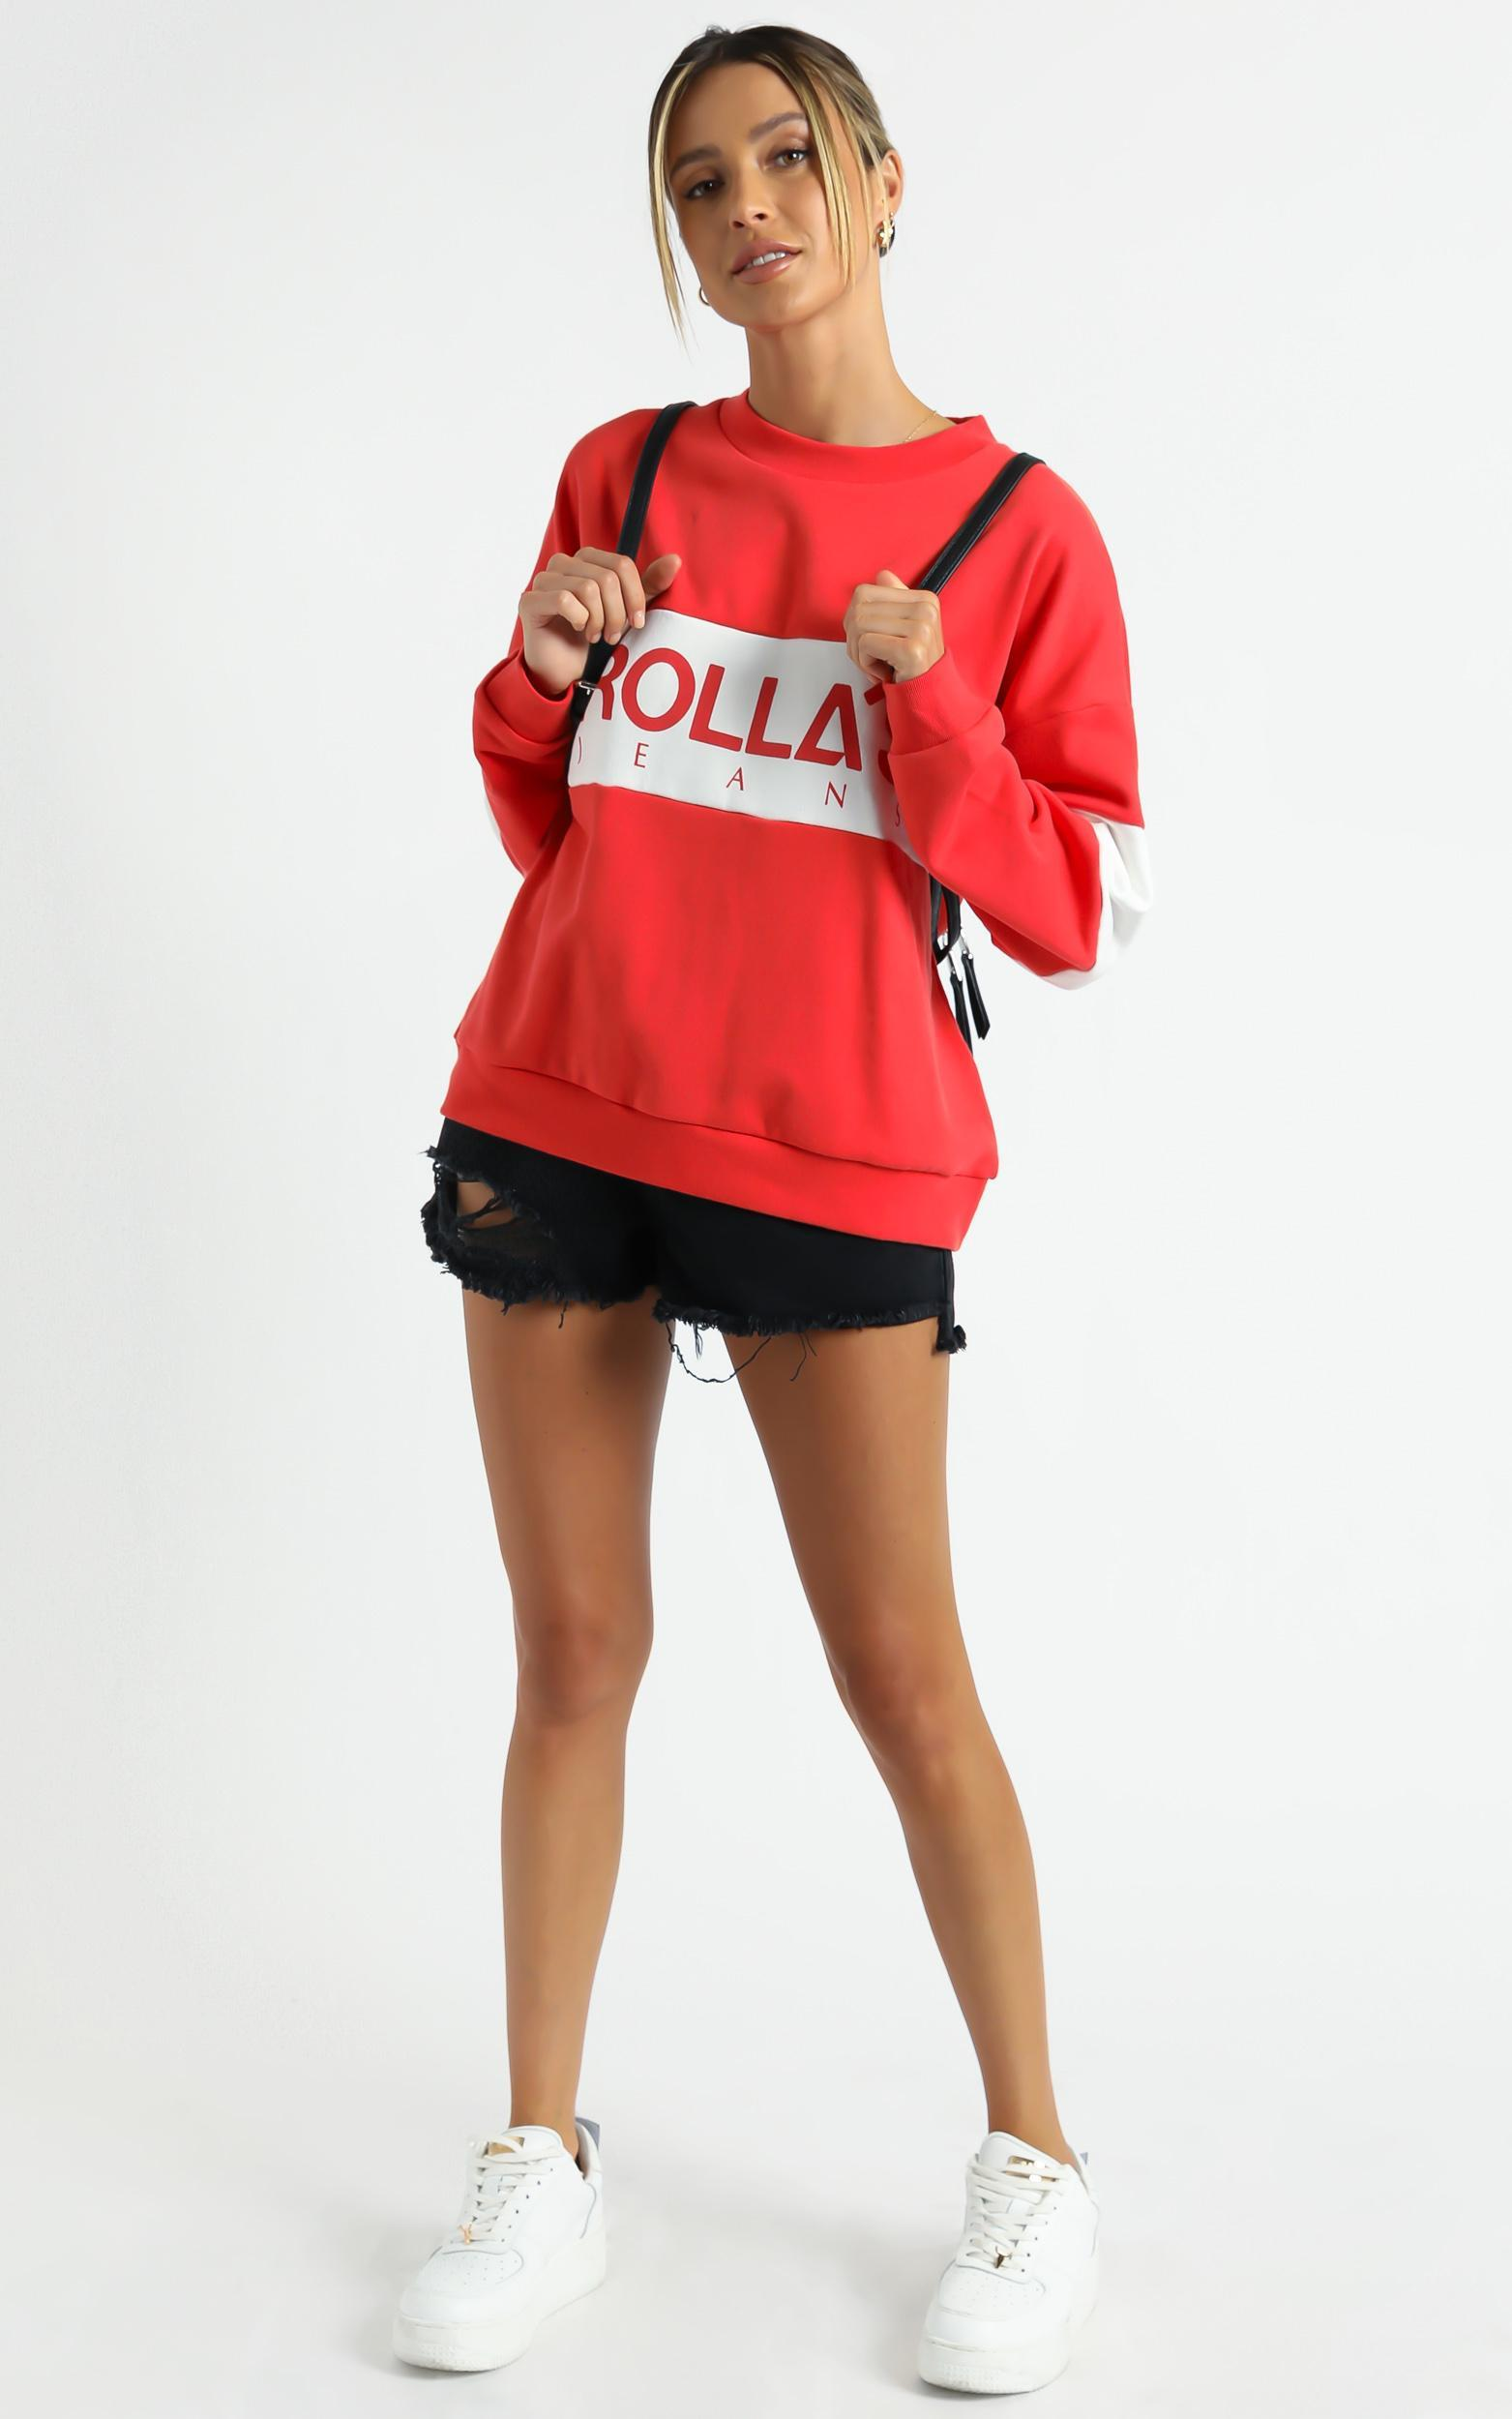 Rollas - Logo Split Sweater in Faded Red - 06, RED1, hi-res image number null